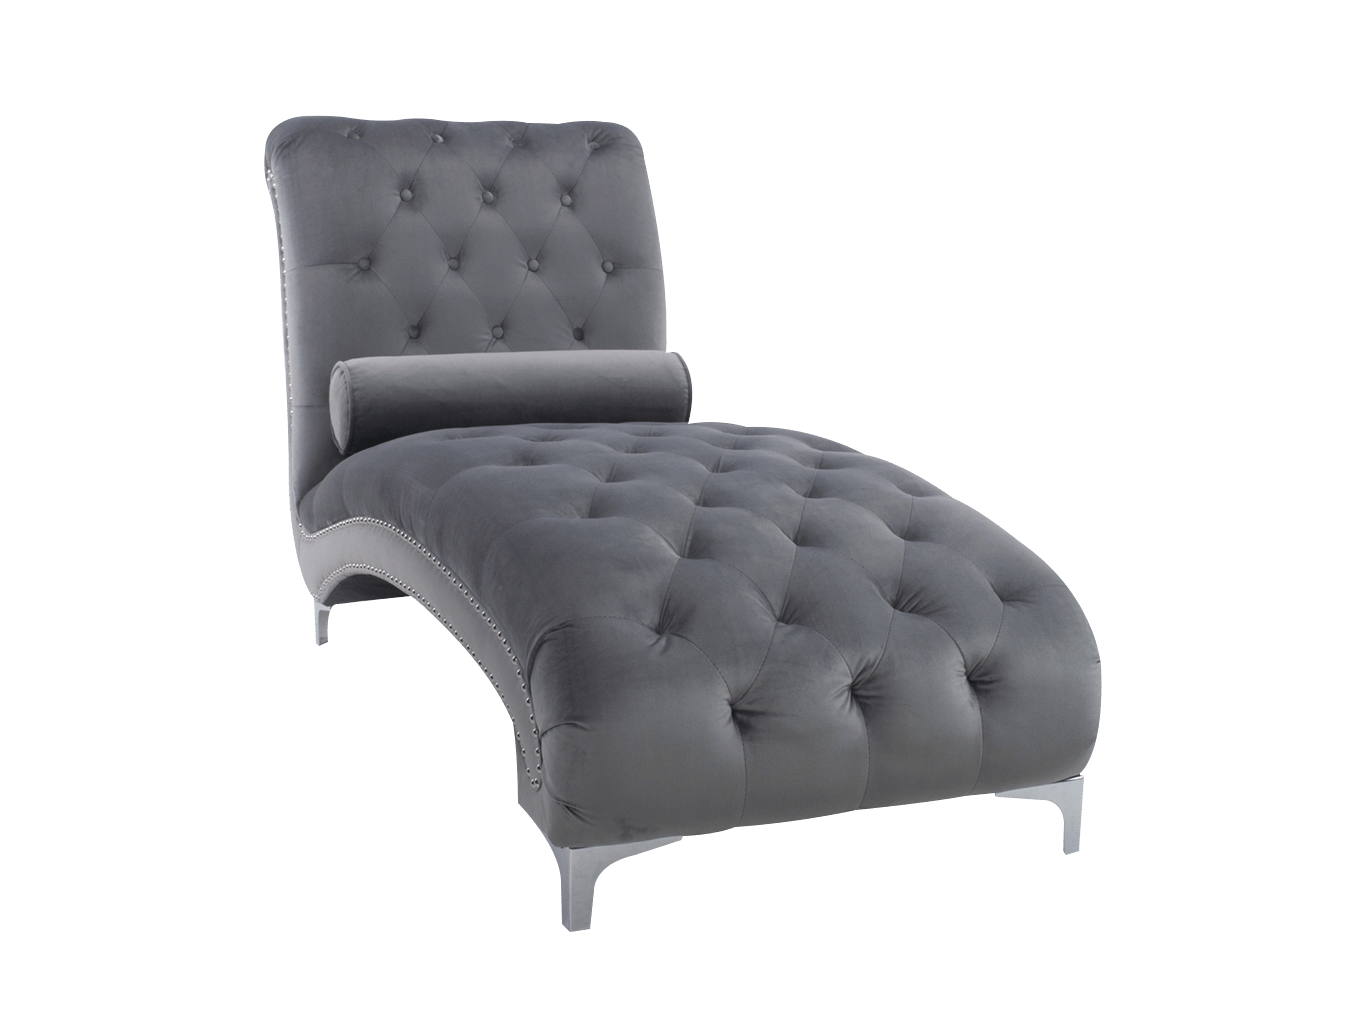 Chaise Lounge French Luxury Grey Velvet Interiors Invogue